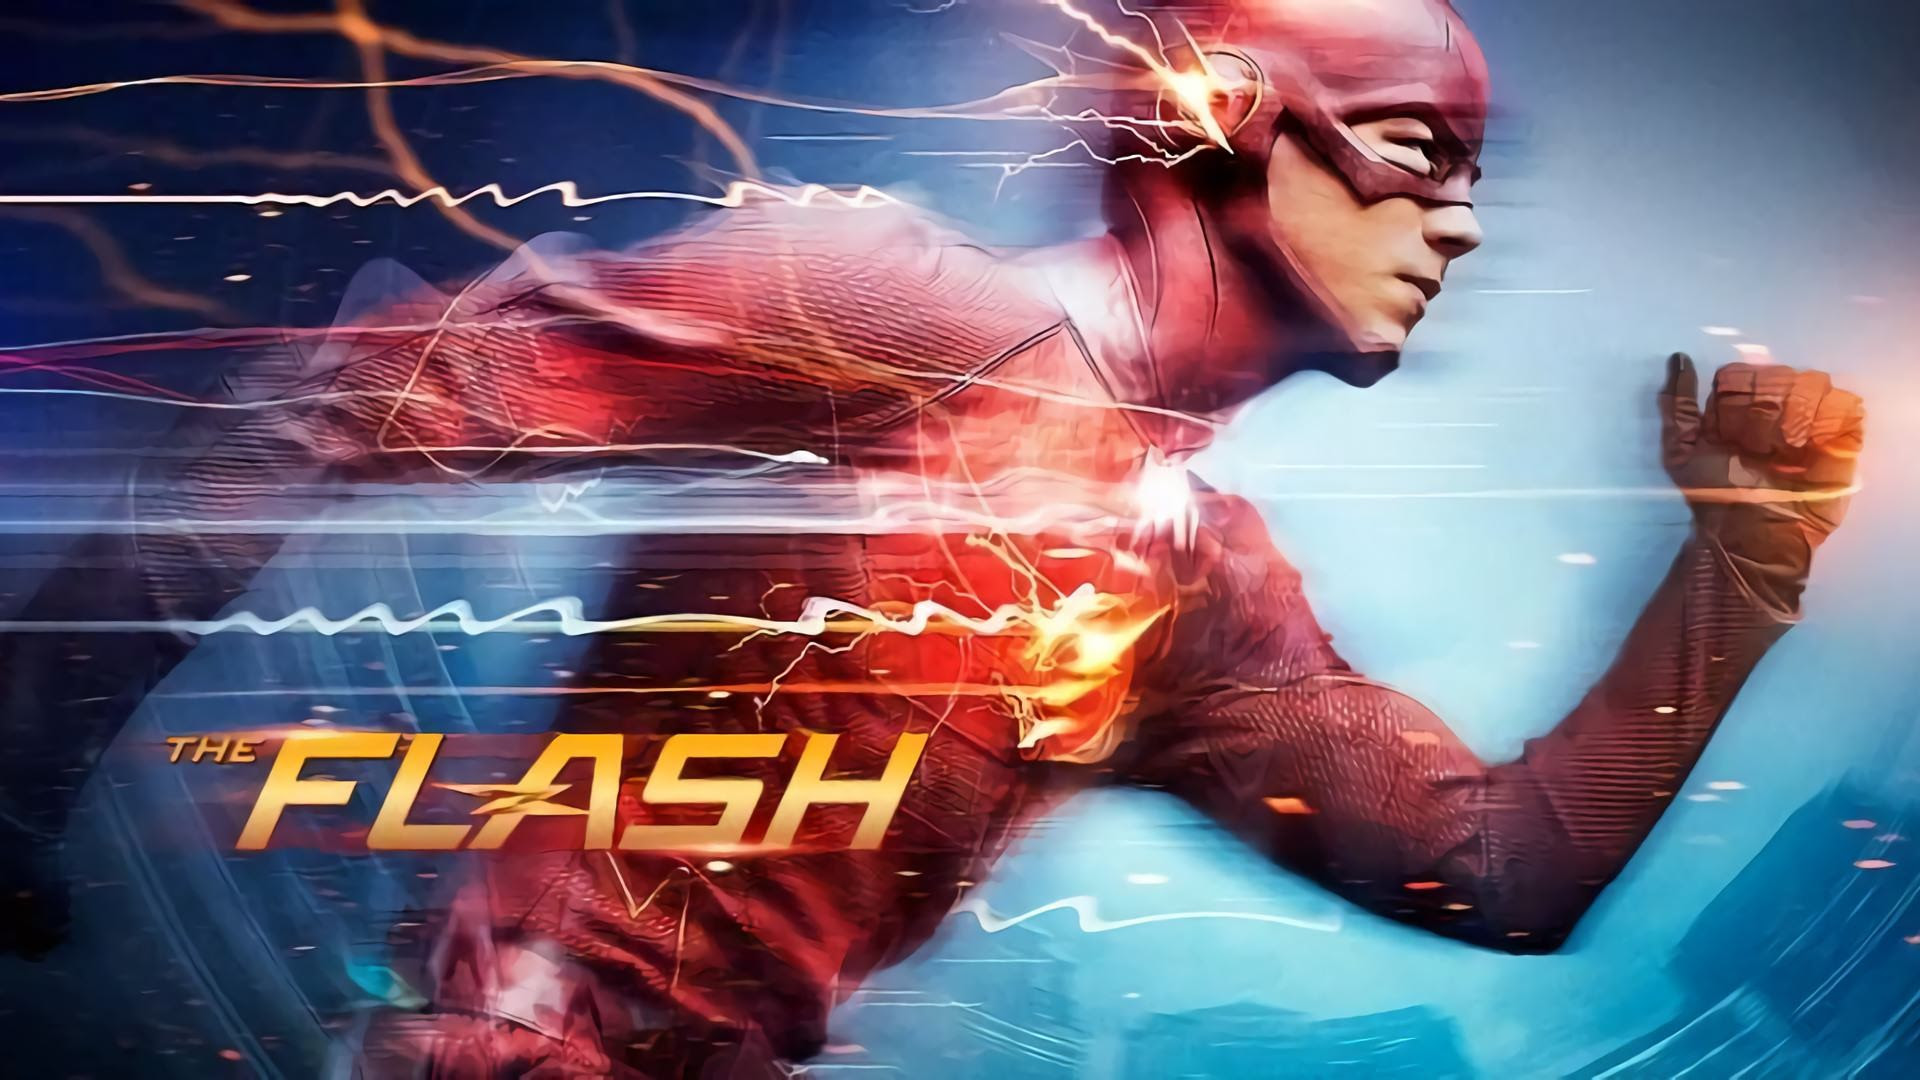 The Flash Tv Series Wallpaper 78 Images